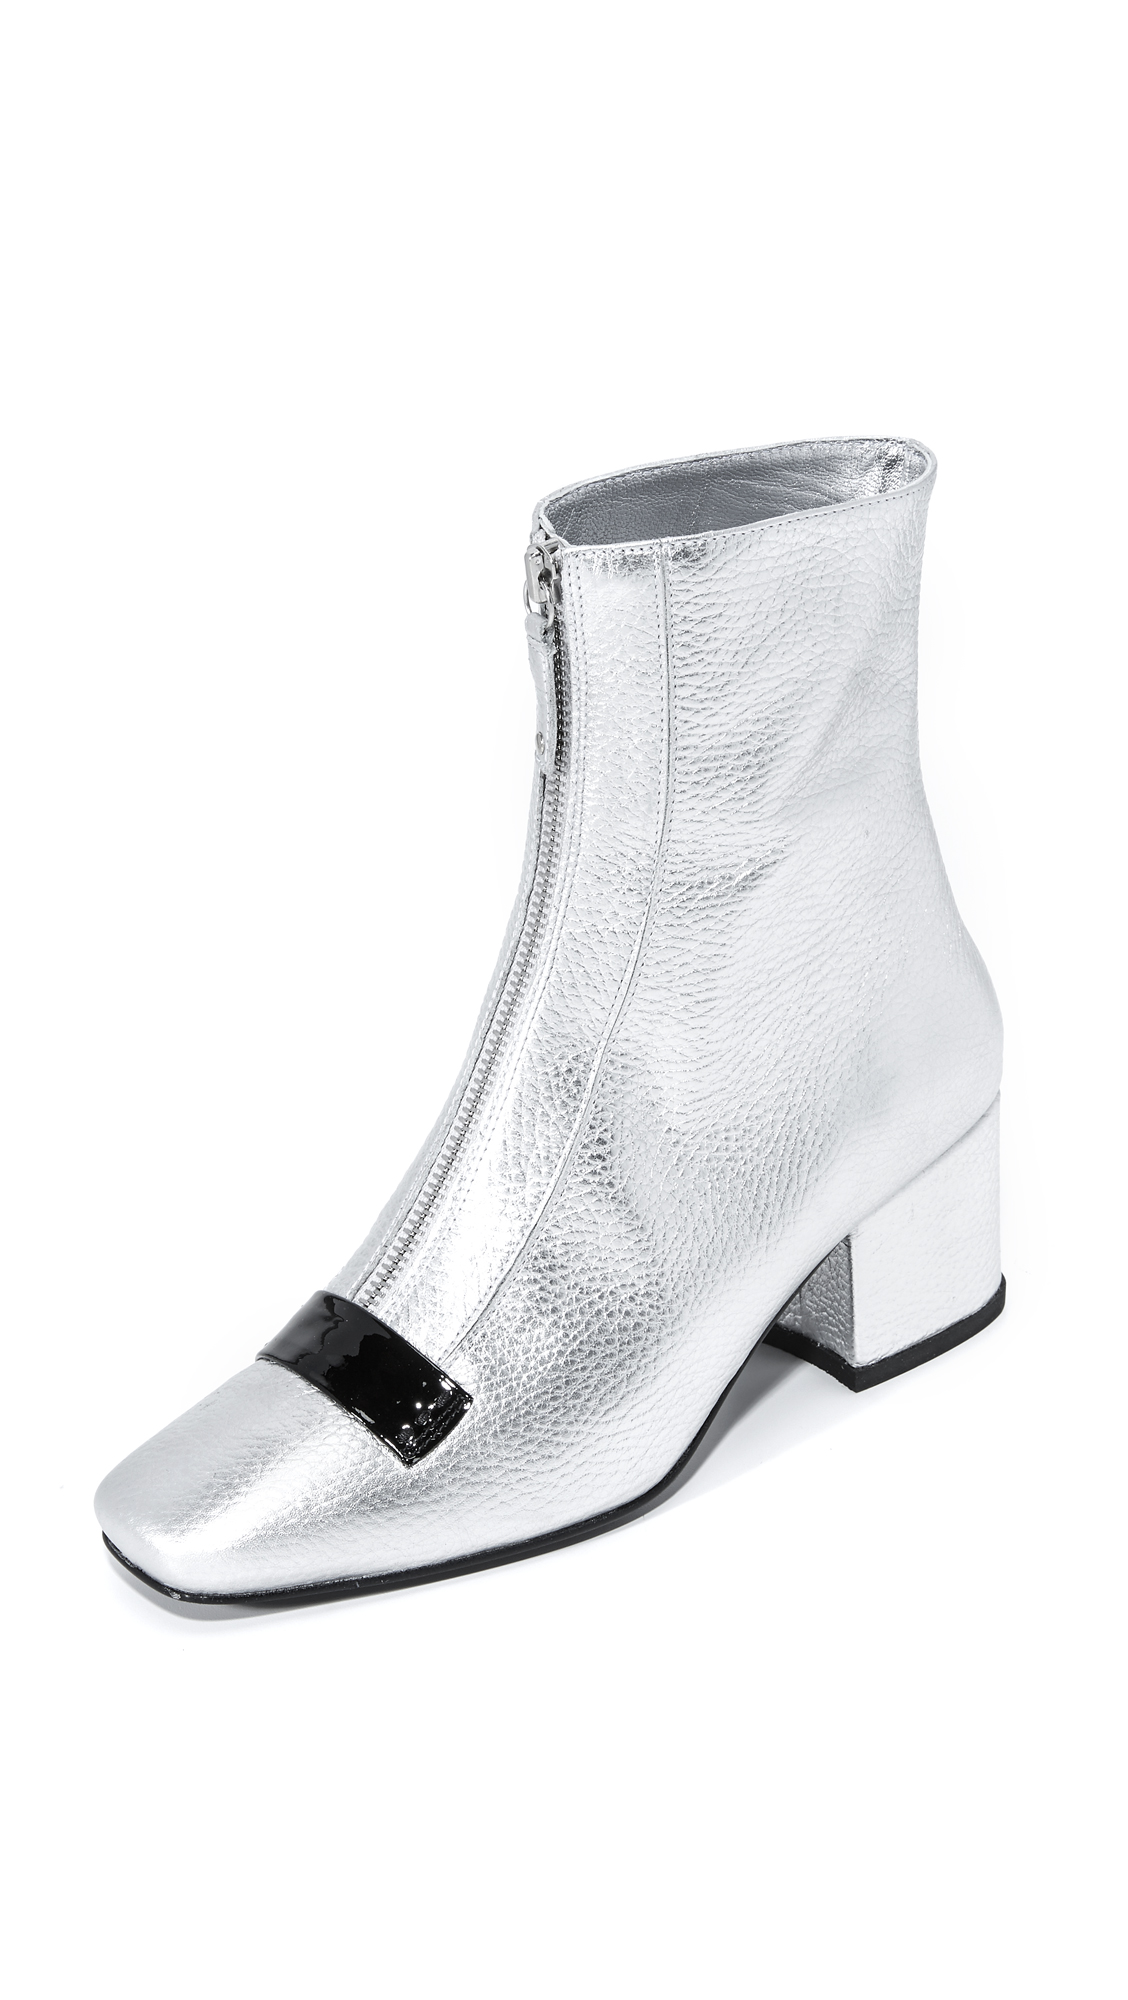 Metallic pebbled leather adds glam rock appeal to these square toe Dorateymur booties. Patent trims the exposed front zip. Covered heel and leather sole. Leather: Cowhide. Made in Portugal. This item cannot be gift boxed. Measurements